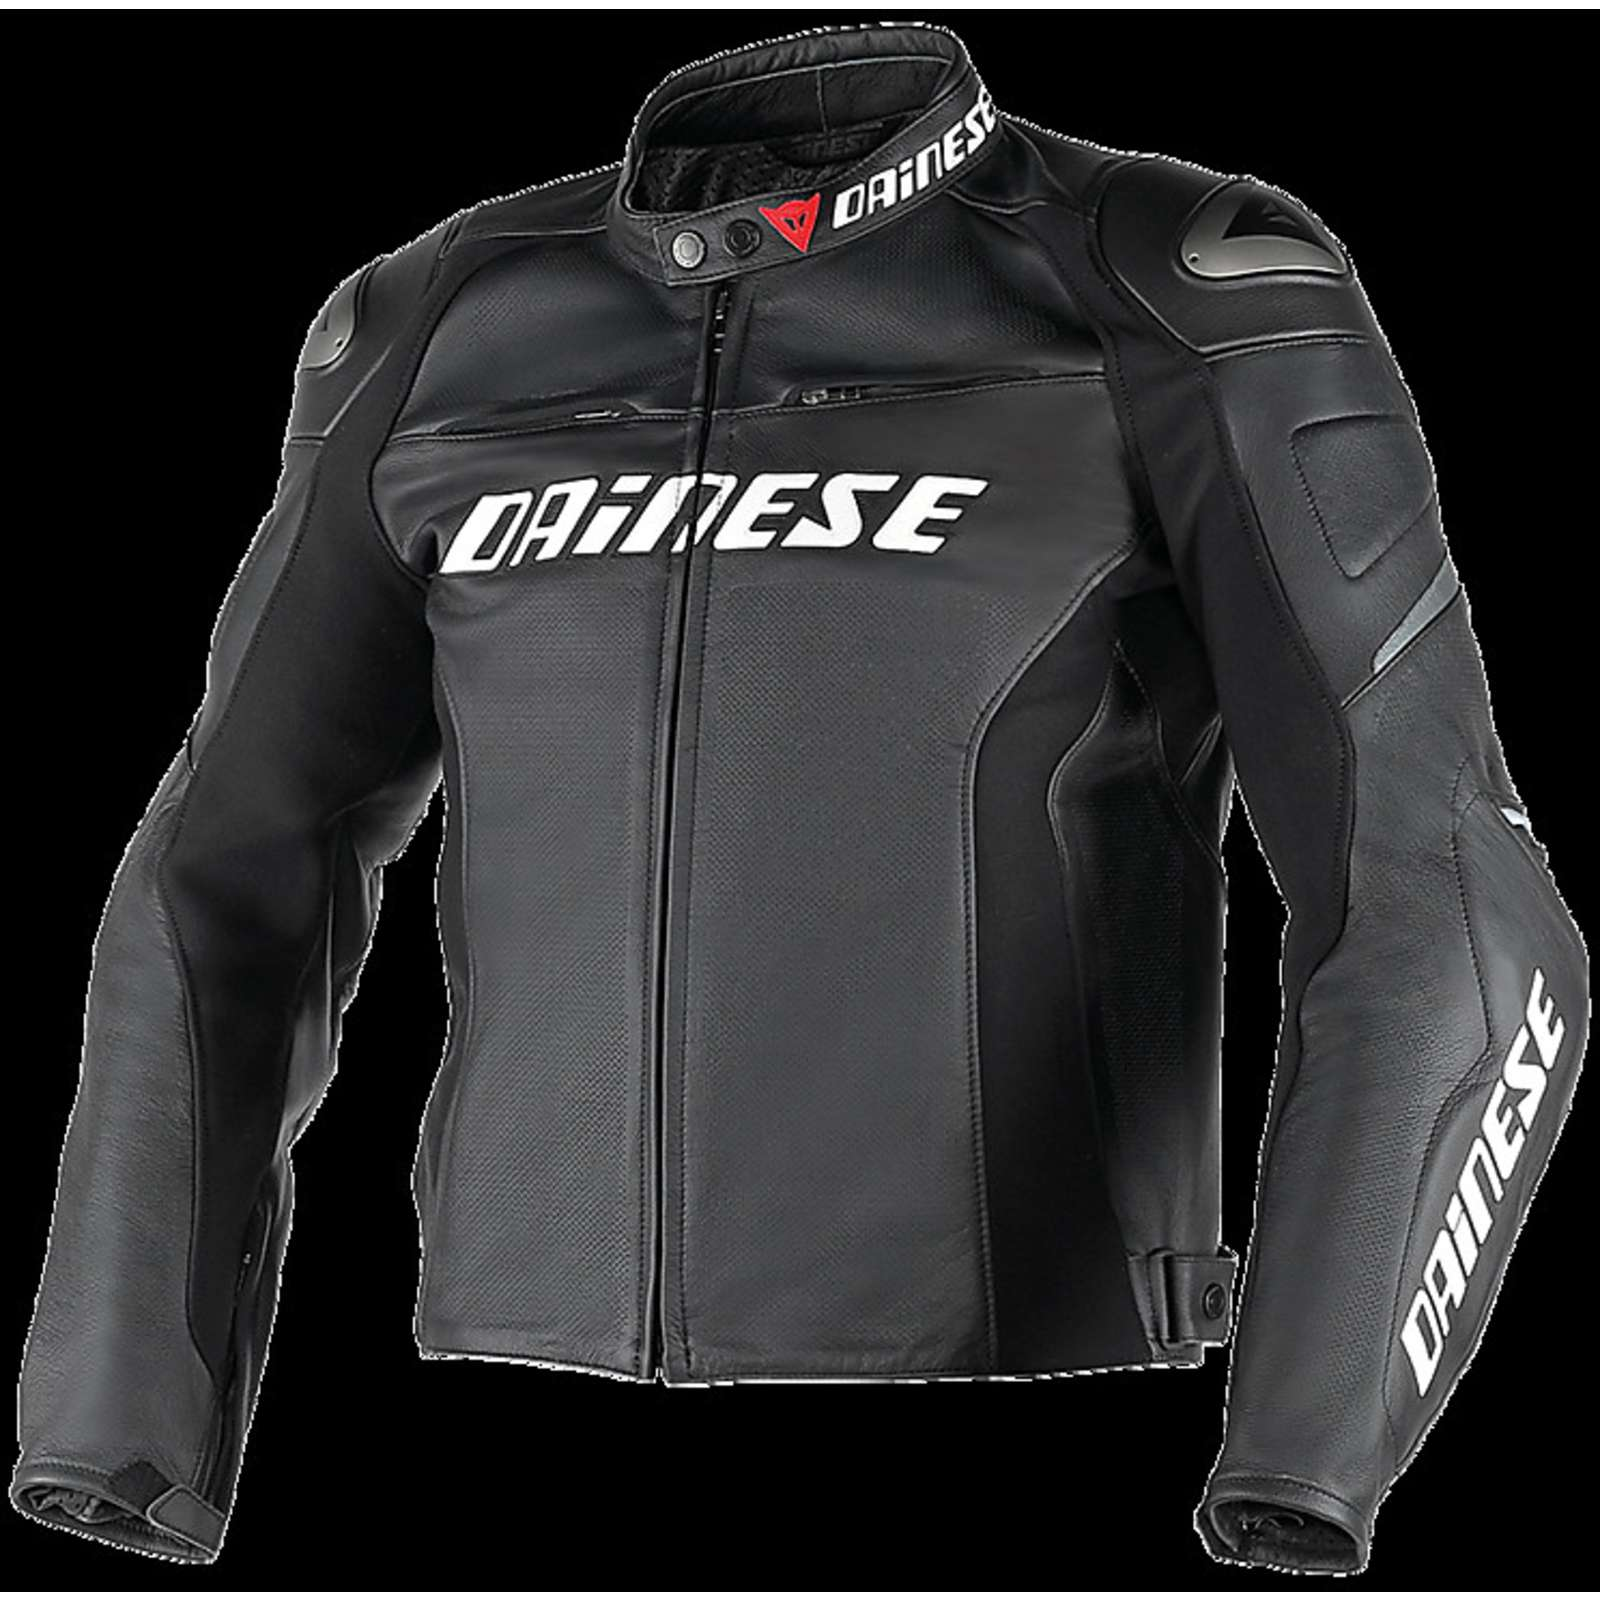 Outlet Racing D1 Jacket perforated Jackets Leather Dainese ...